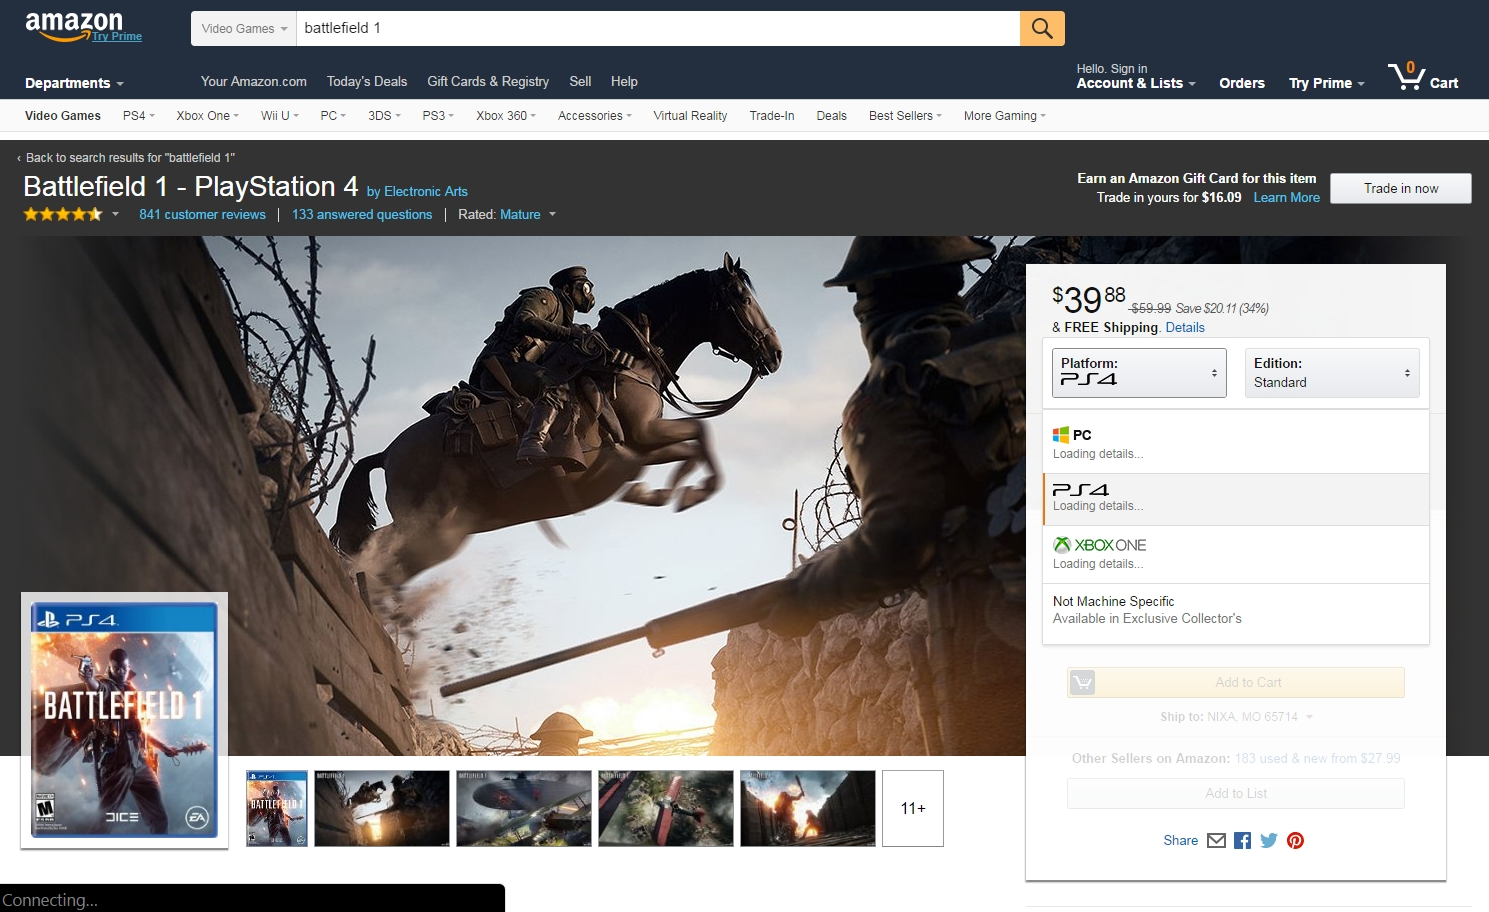 battlefield-1-amazon-redesign-dropdown-console